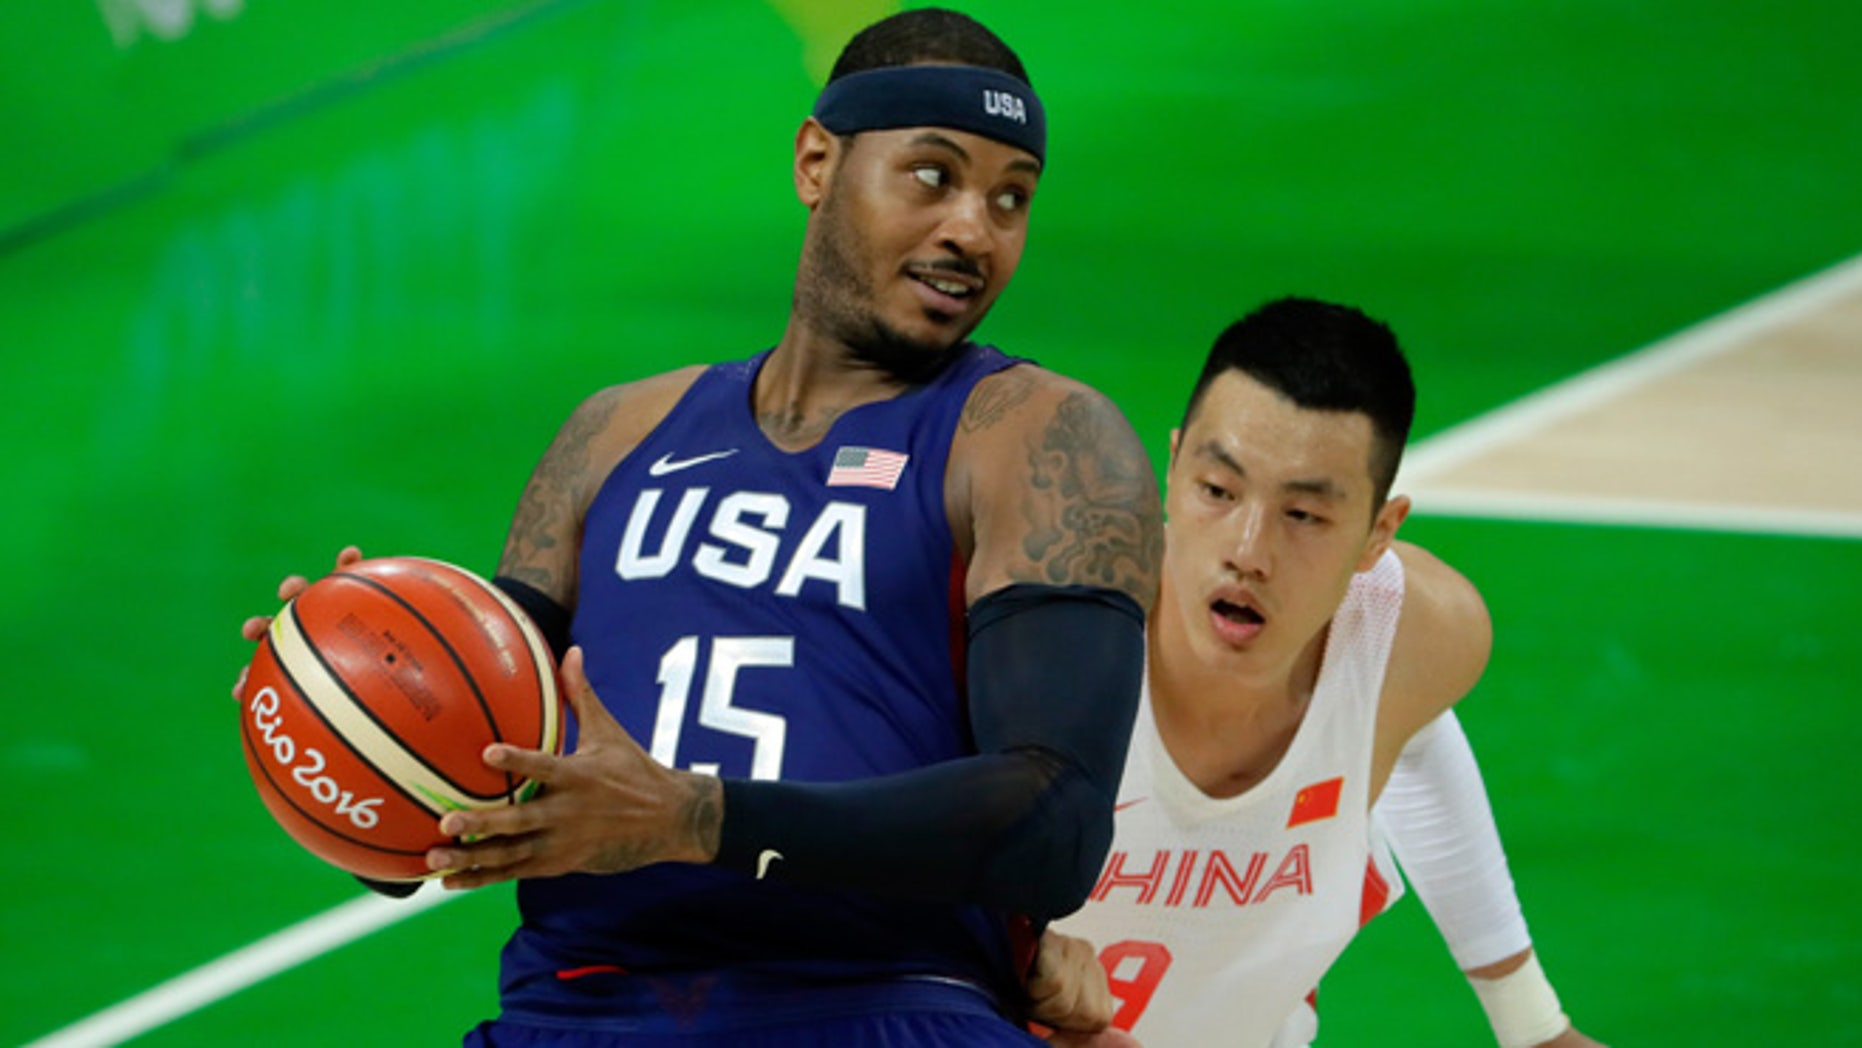 Carmelo Anthony on Day 1 of the Rio 2016 Olympic Games at Carioca Arena 1 on August 6, 2016 in Rio de Janeiro, Brazil.